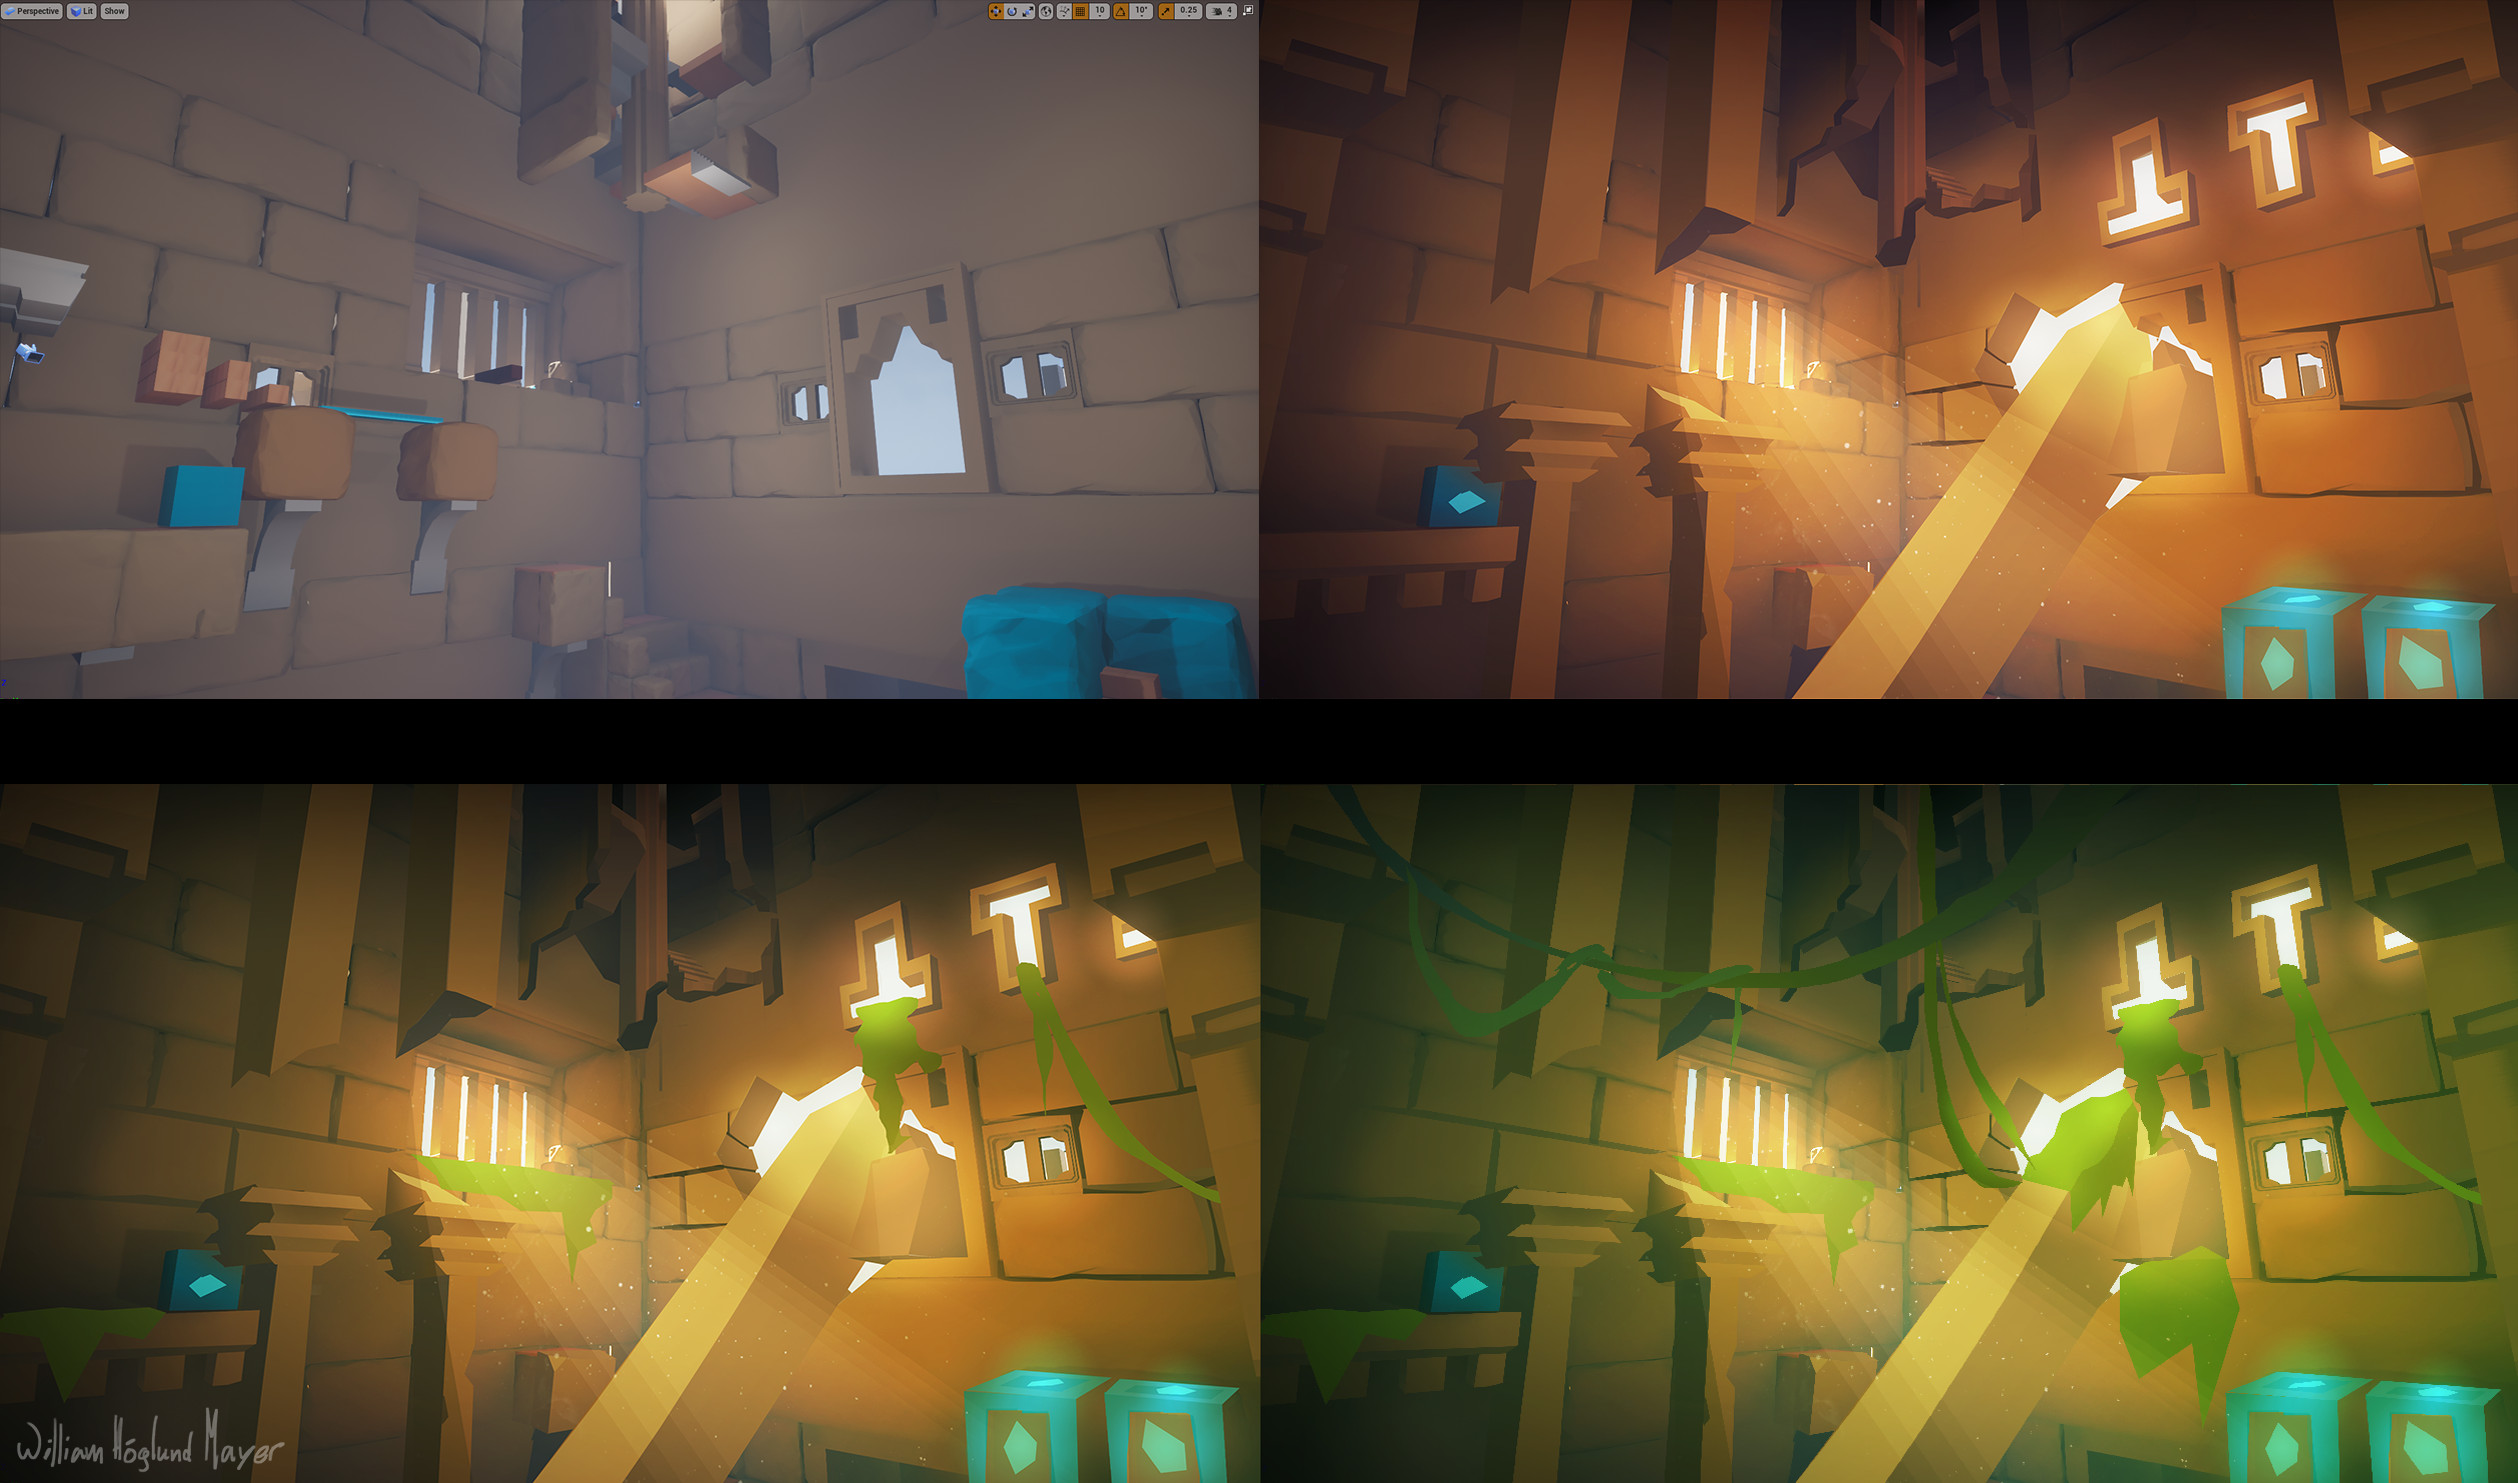 Level overpaint demonstrating lighting variation for different overgrowth levels.